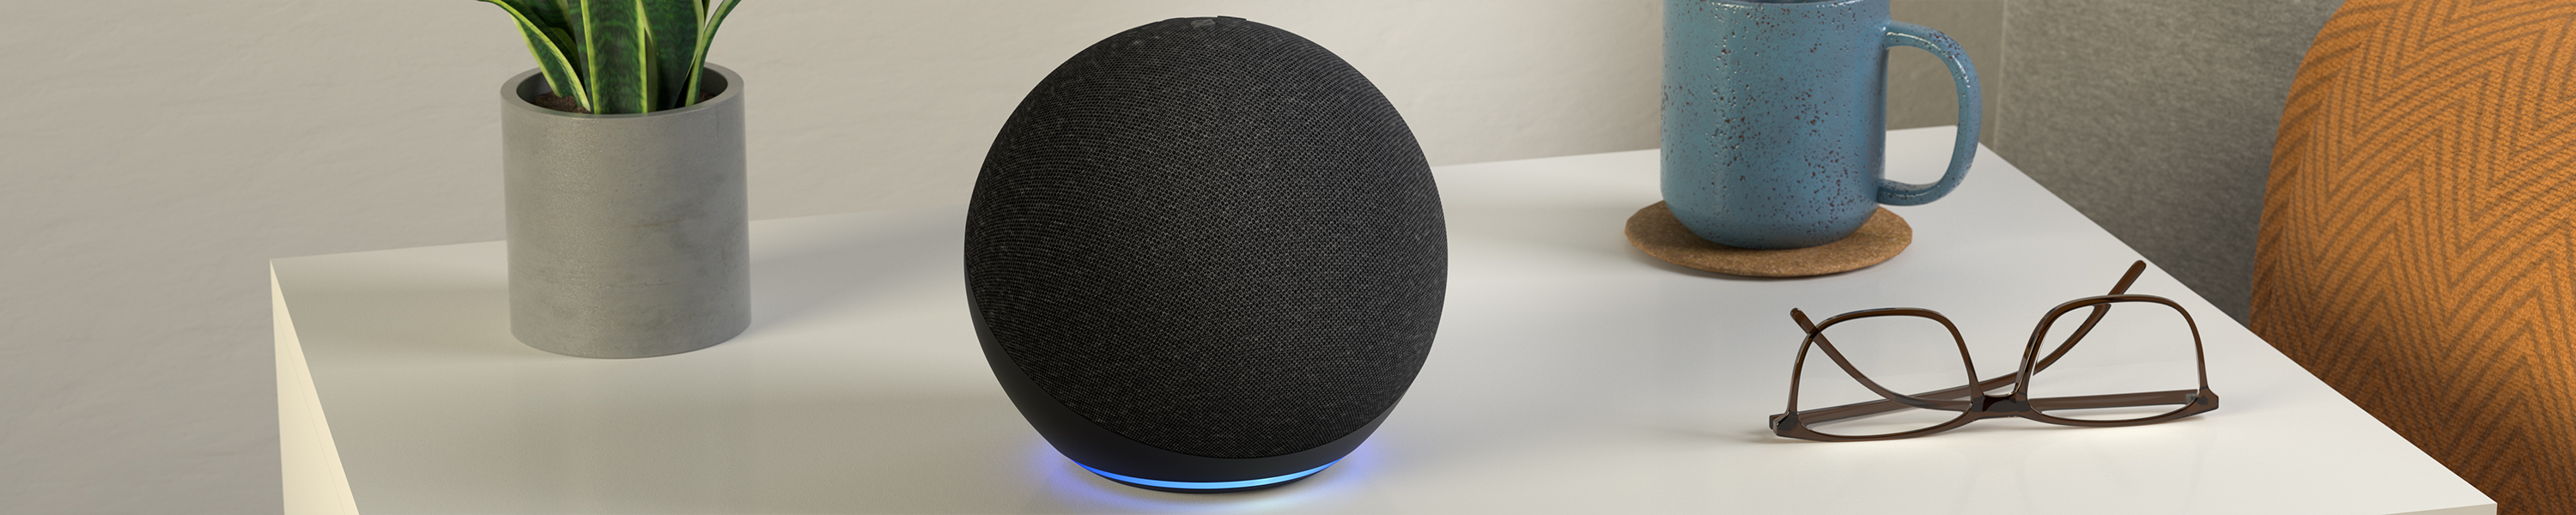 Alexa Keeps You Connected